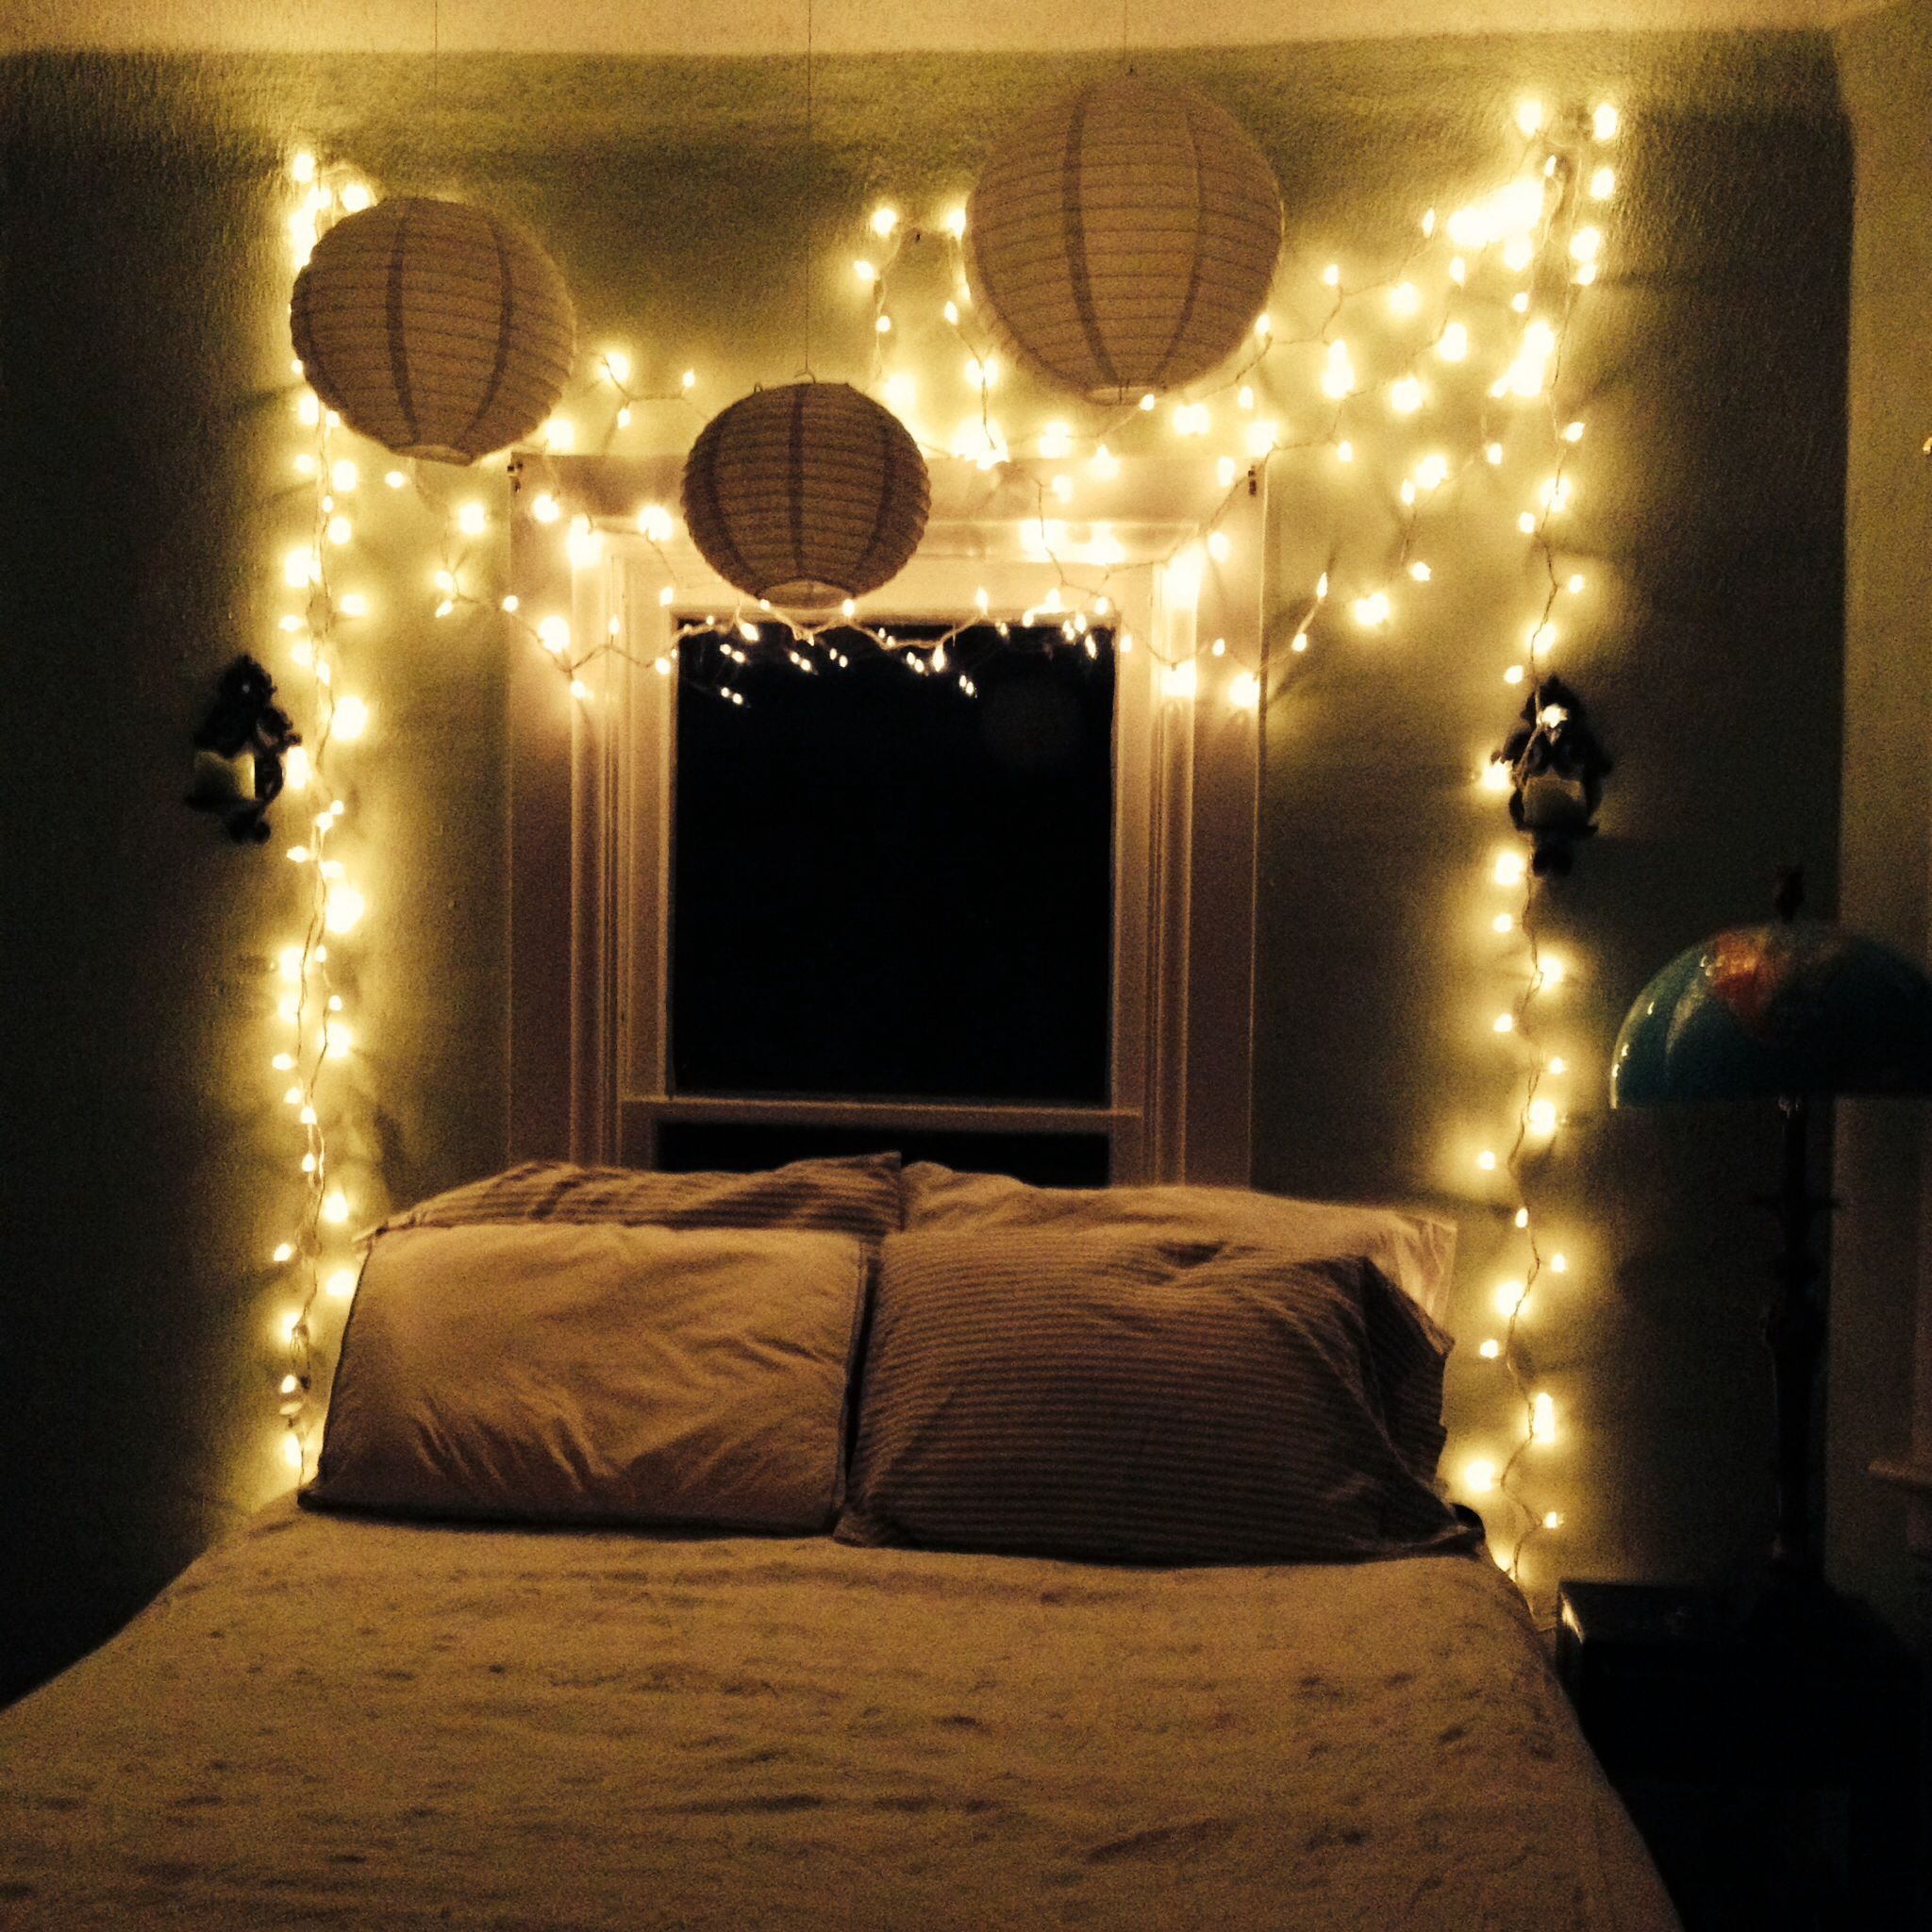 Charmant My Bedroom Oasis: Twinkle Lights, White, And Stripes.